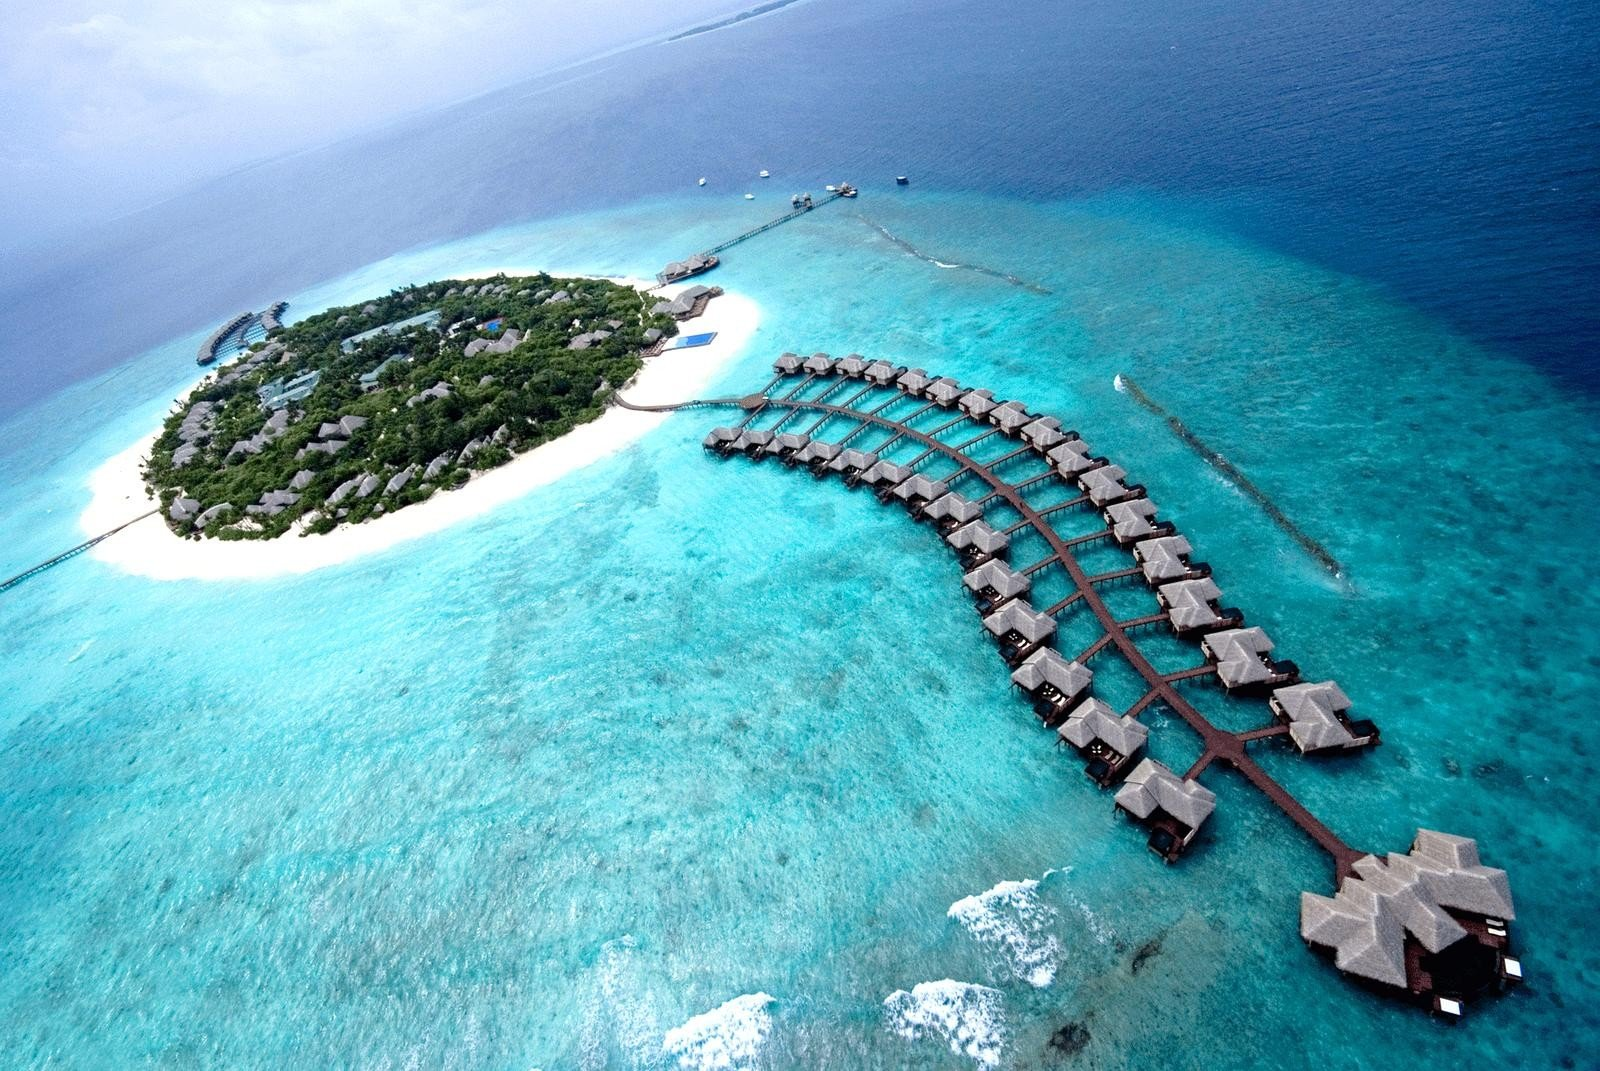 maldives The most fluid way to experience the maldives is aboard four seasons explorer, where daily changing vistas, remote waters and some of the maldives most experienced boatmen, crew and divers take you on an epic journey of discovery into the lesser known outer atolls.